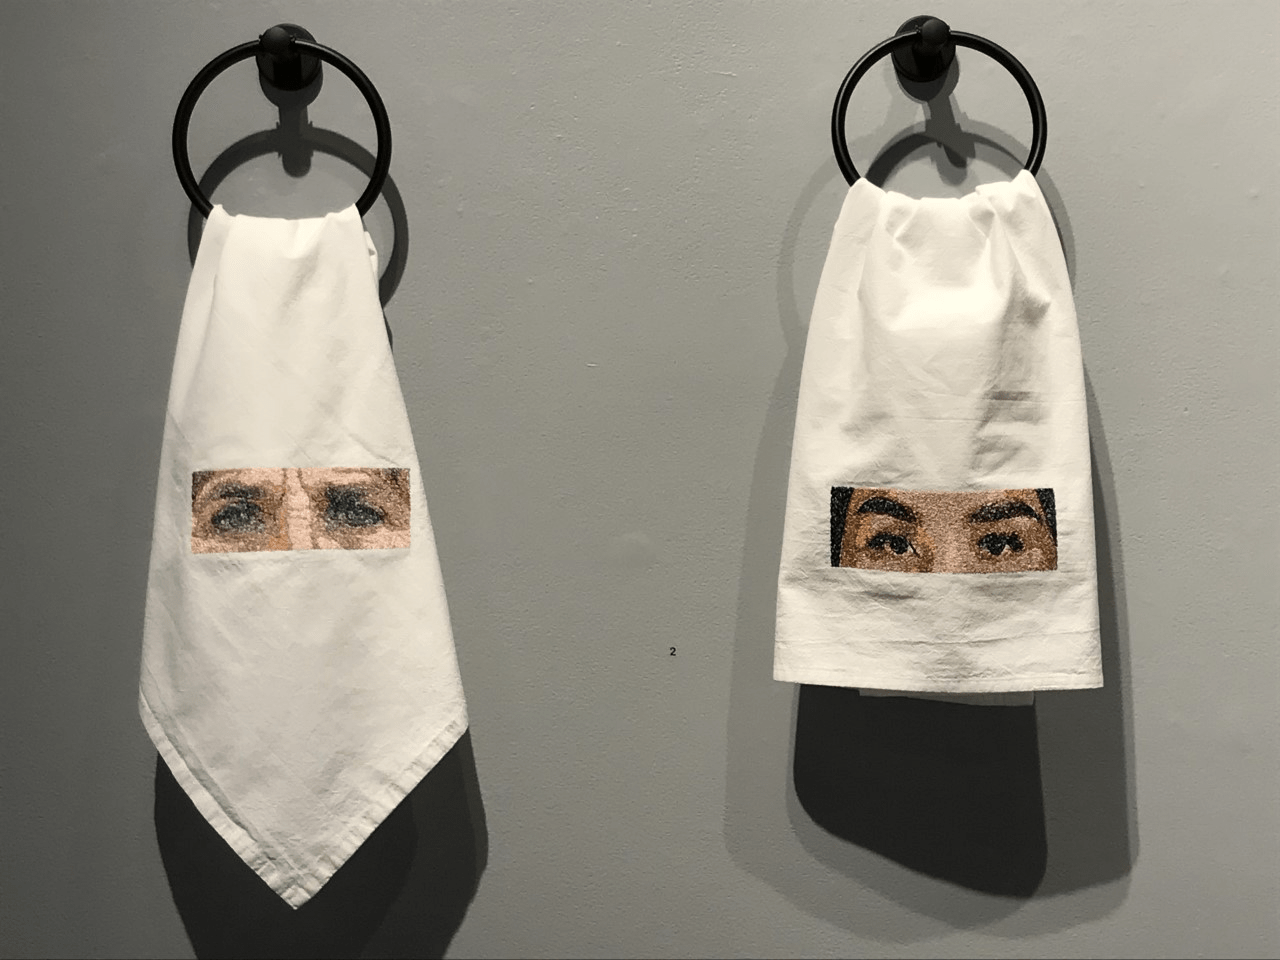 An art exhibit of two cloths with eyes on the cloths.